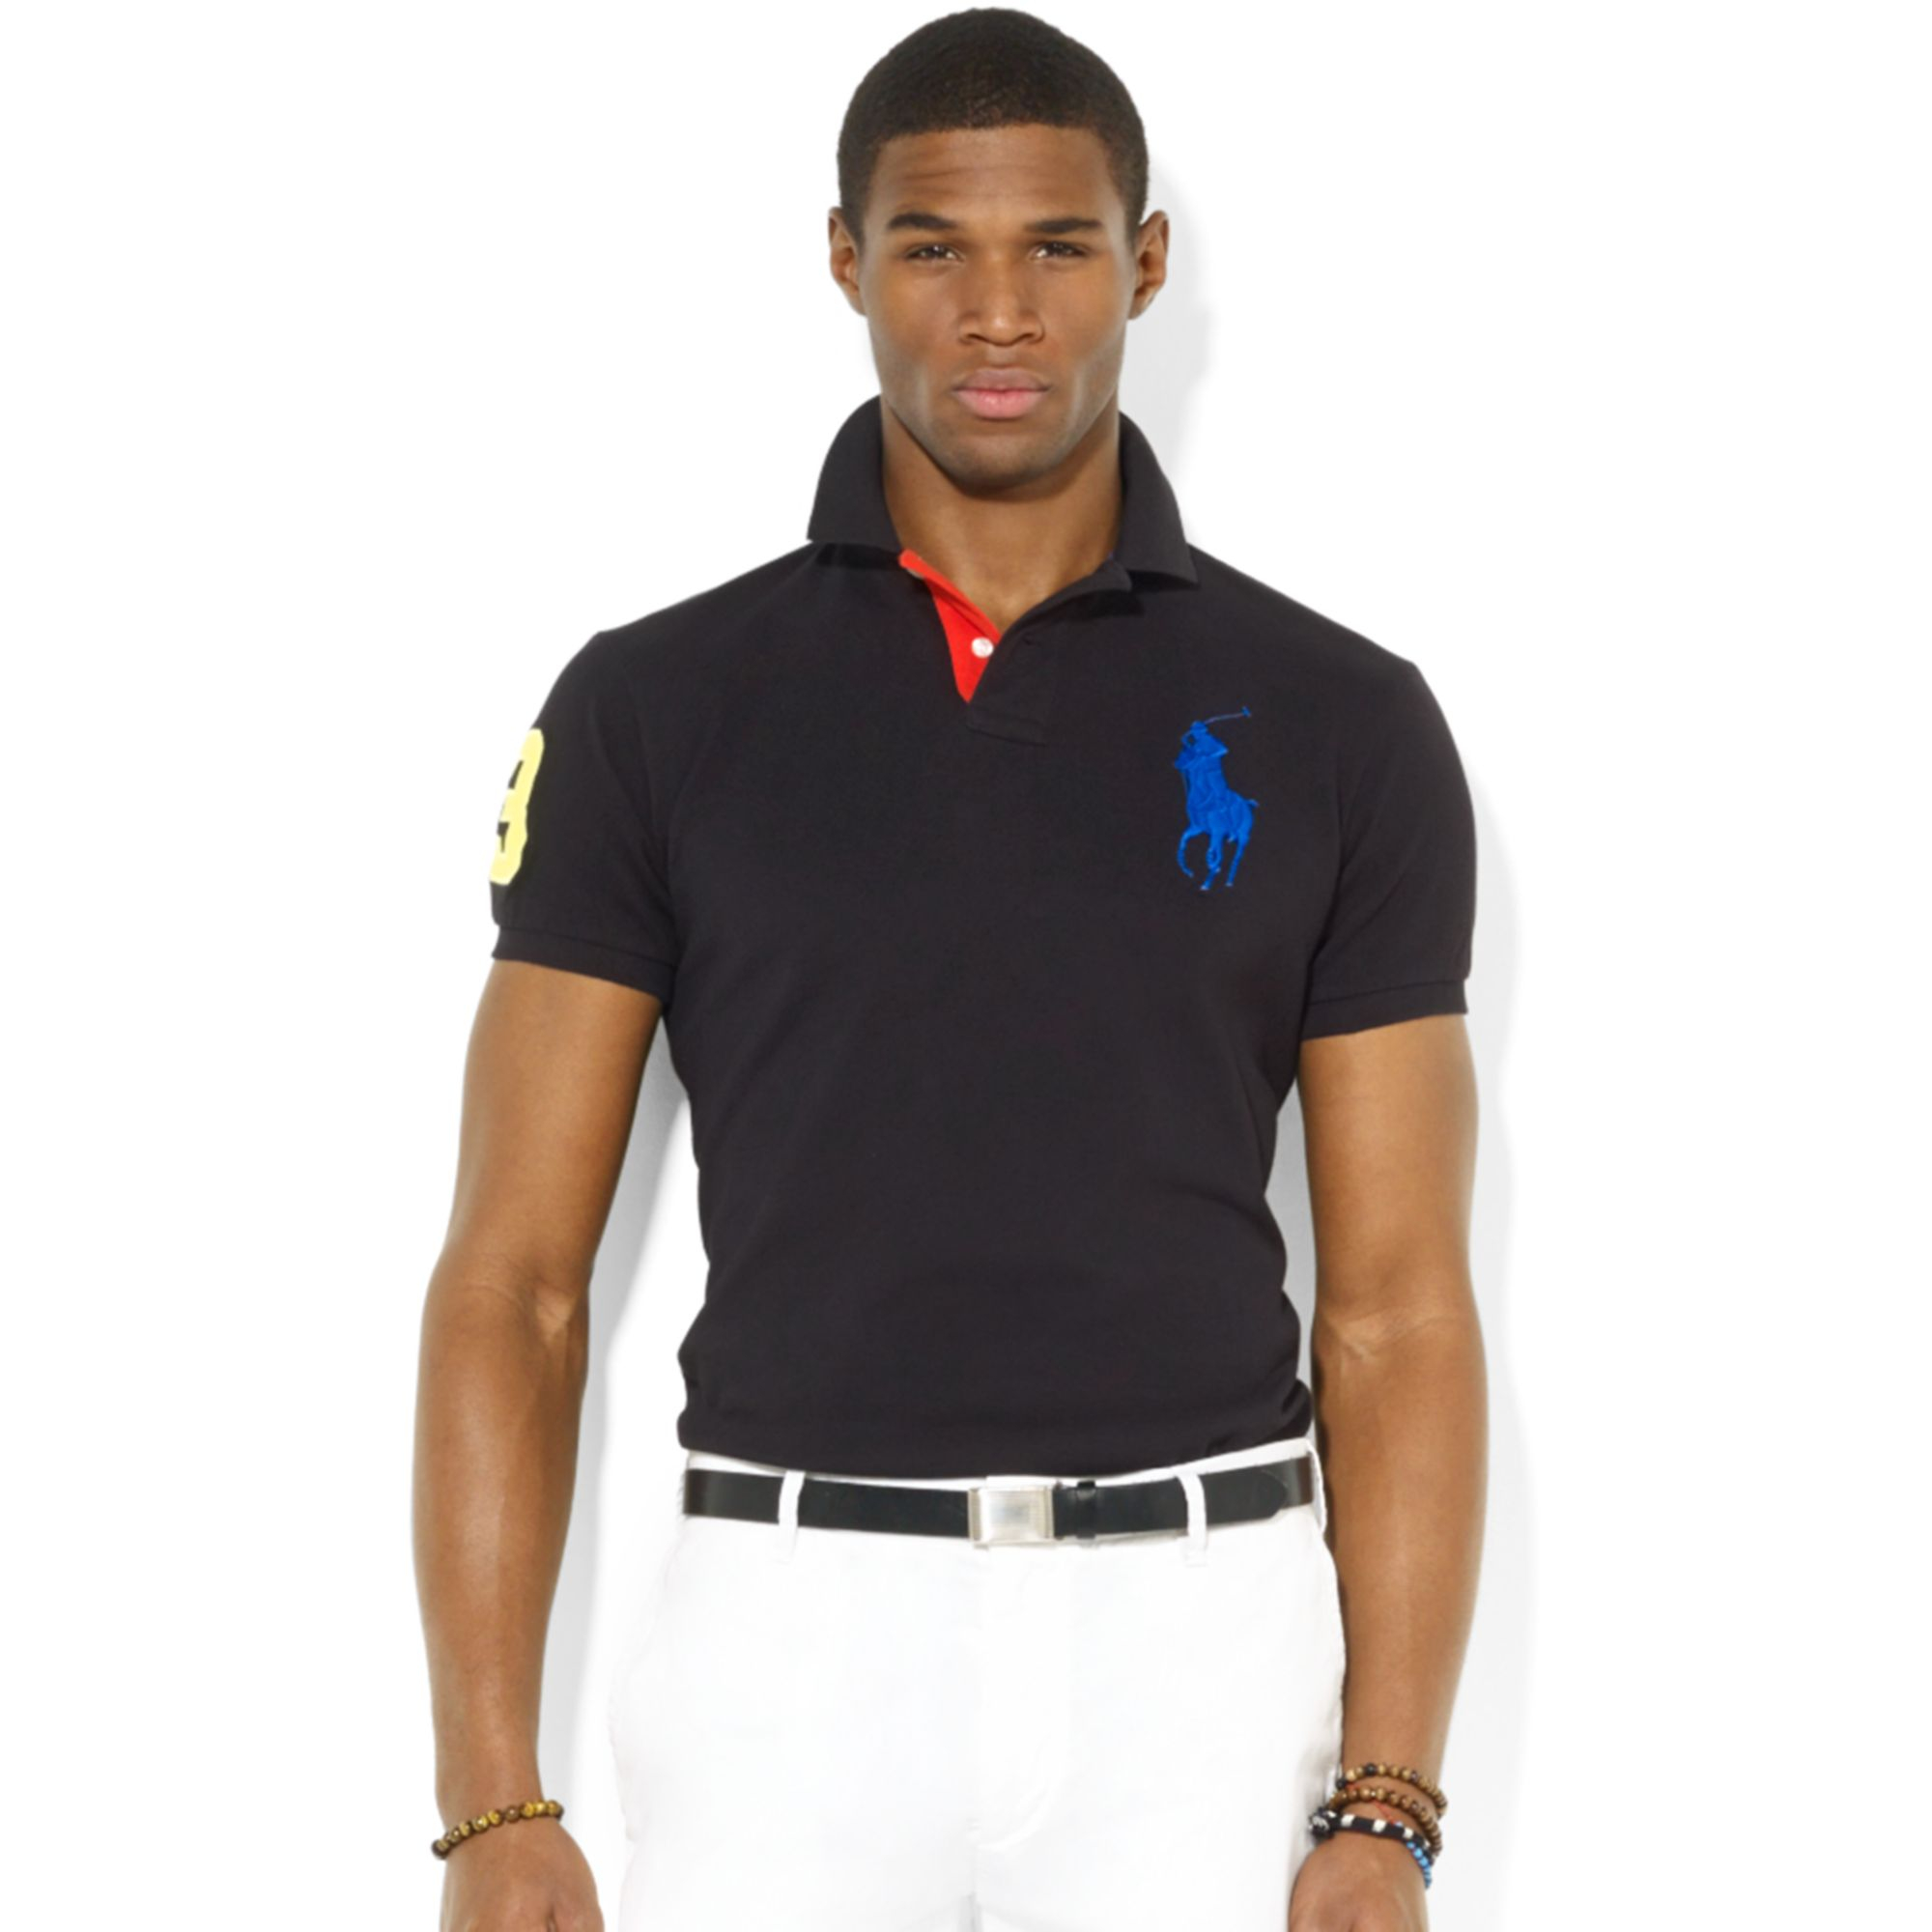 cead10ed Polo Ralph Lauren Polo Customfit Big Pony Mesh Polo in Black for Men ...